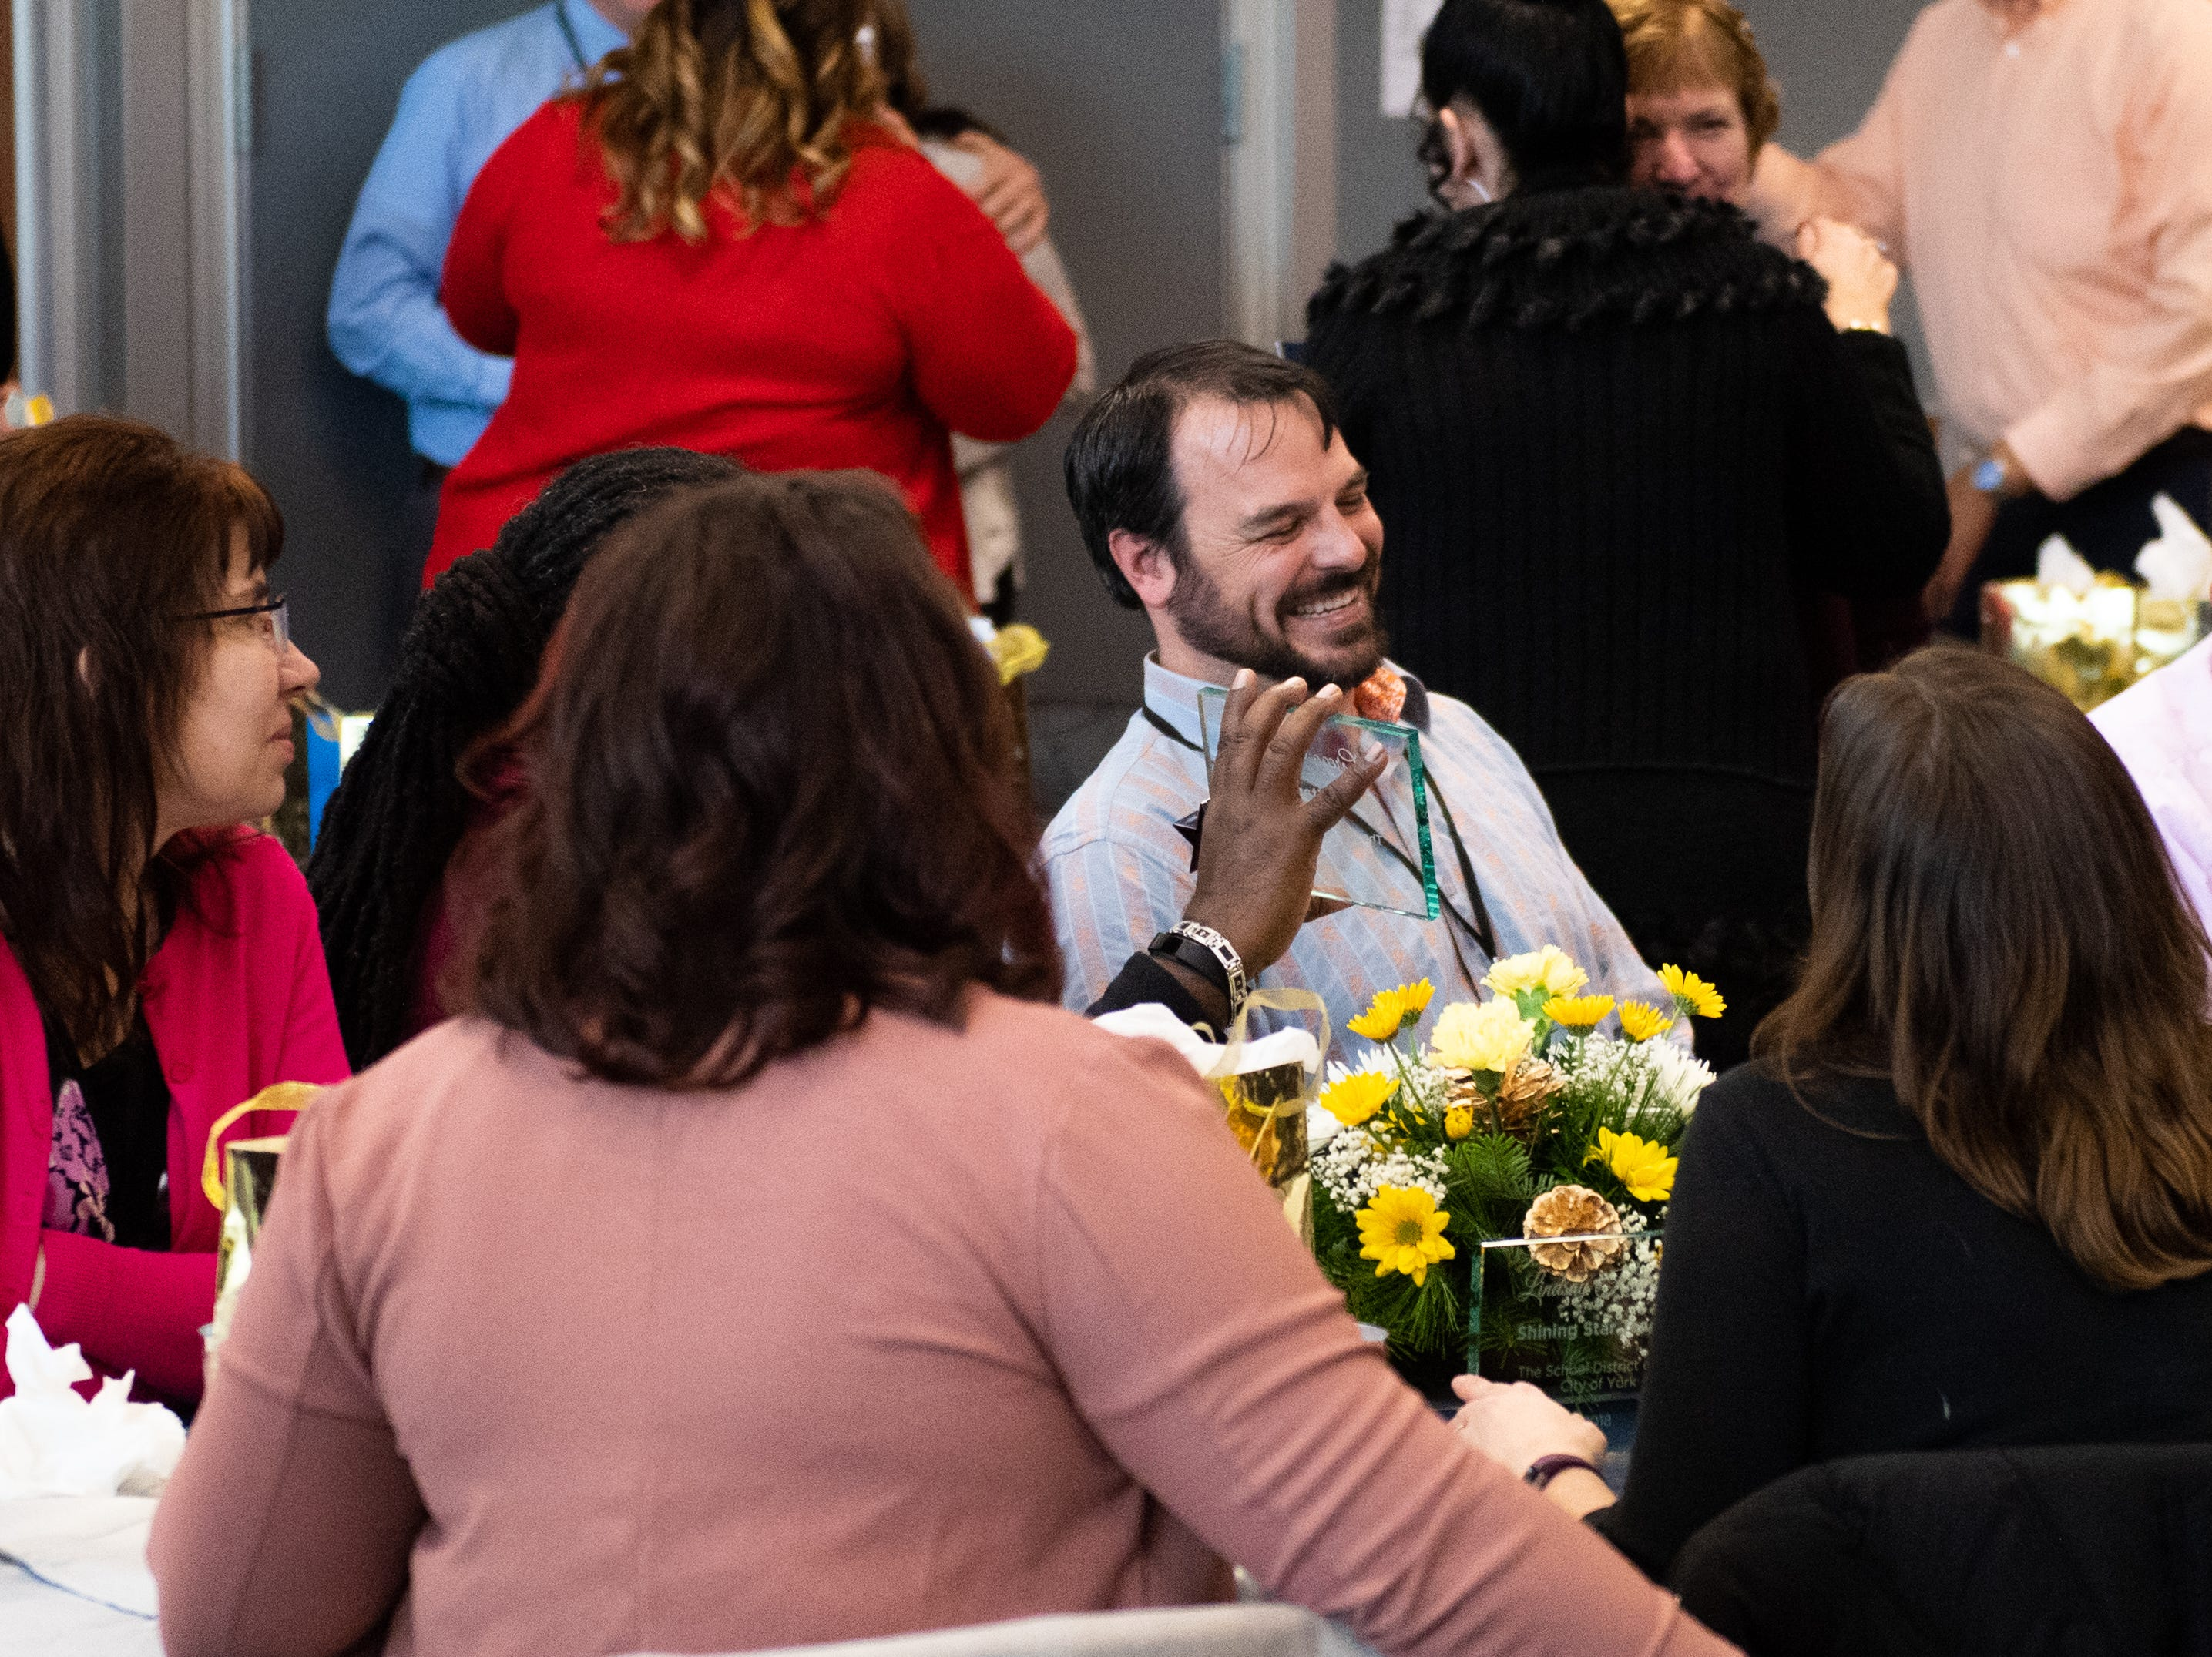 Jim Sieling, a teacher at Edgar Fahs Smith STEAM Academy, and the rest of his fellow Shining Stars are all smiles after receiving their hard earned awards, December 6, 2018.